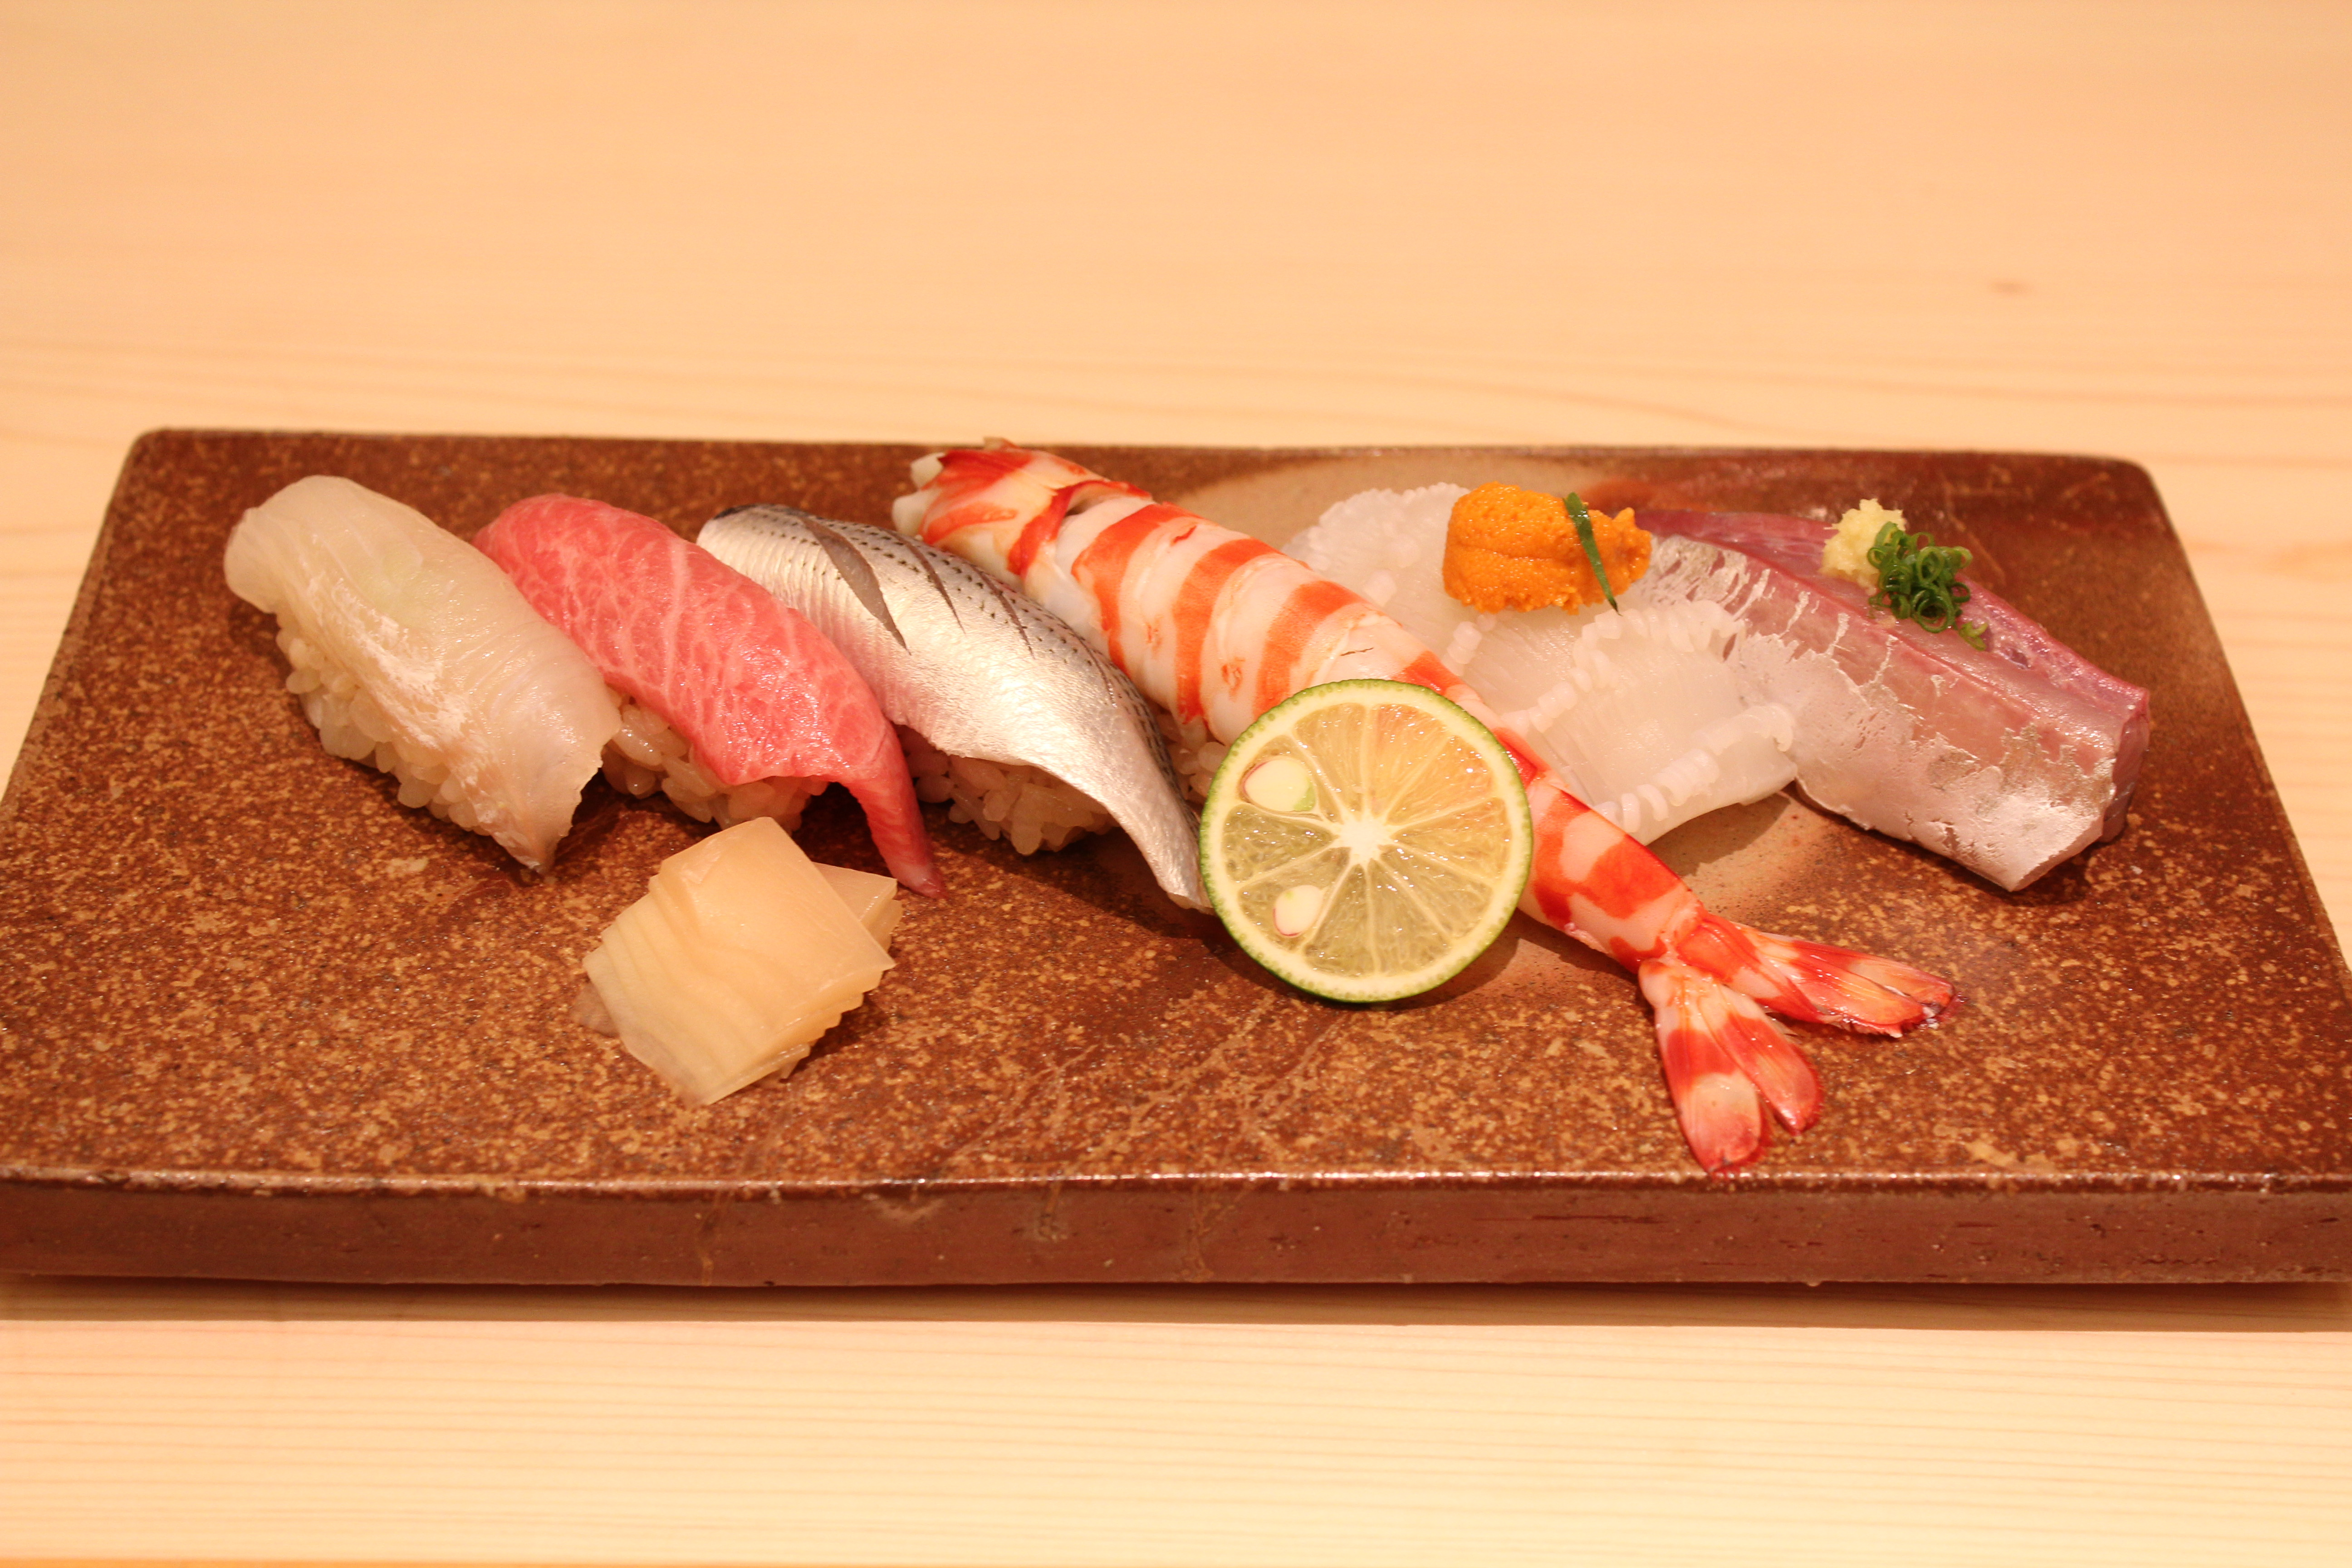 Japanese Cuisine What Are The Different Types Of Shrimp Used In Japanese Cuisine